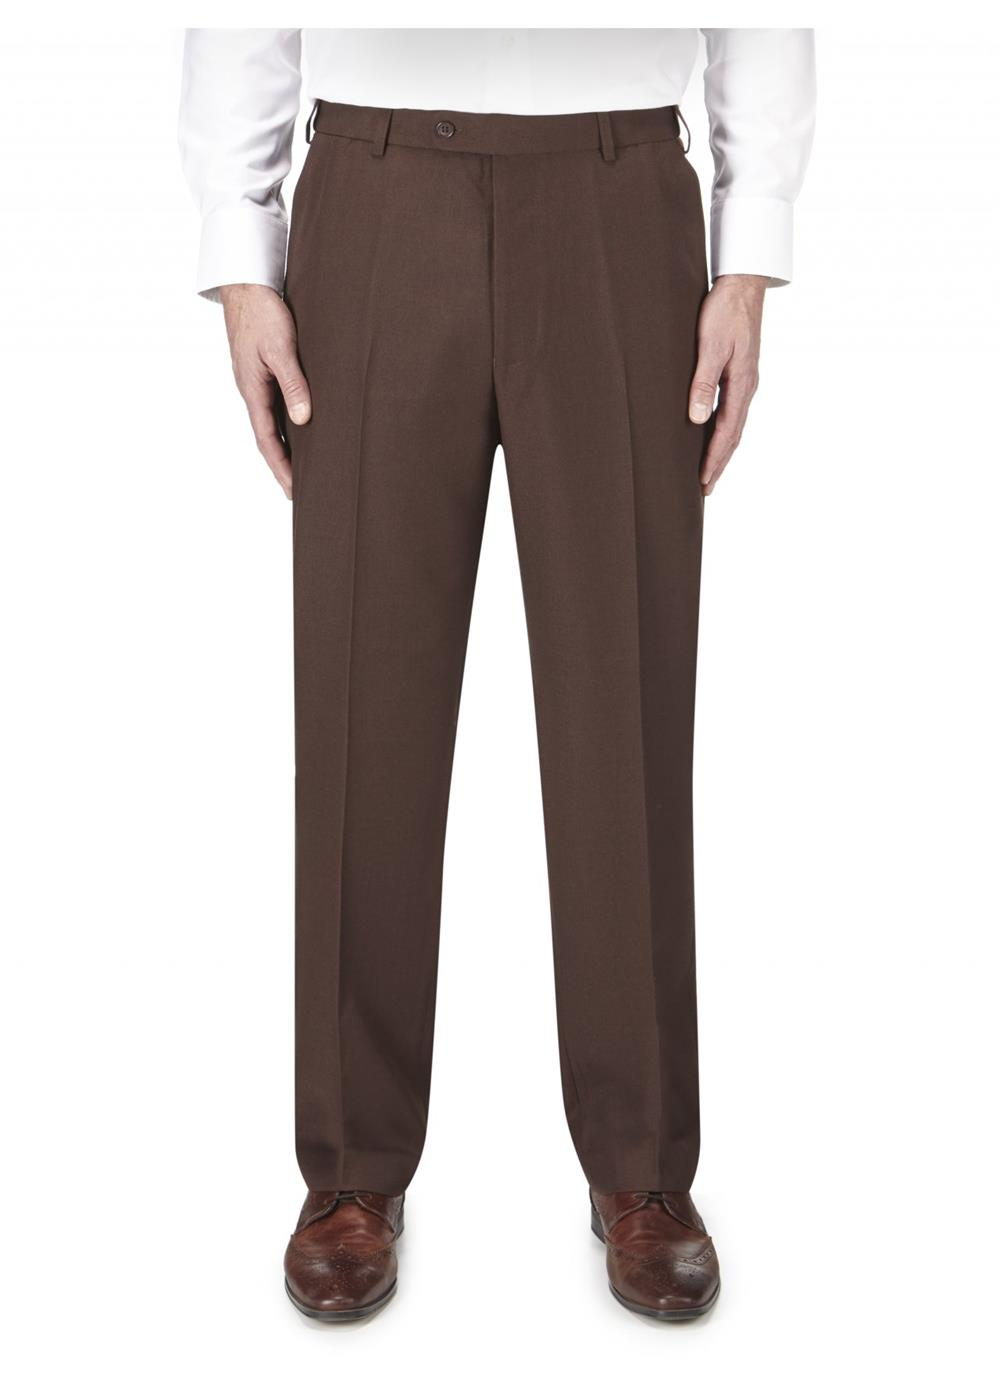 wexford formal trouser (chocolate)